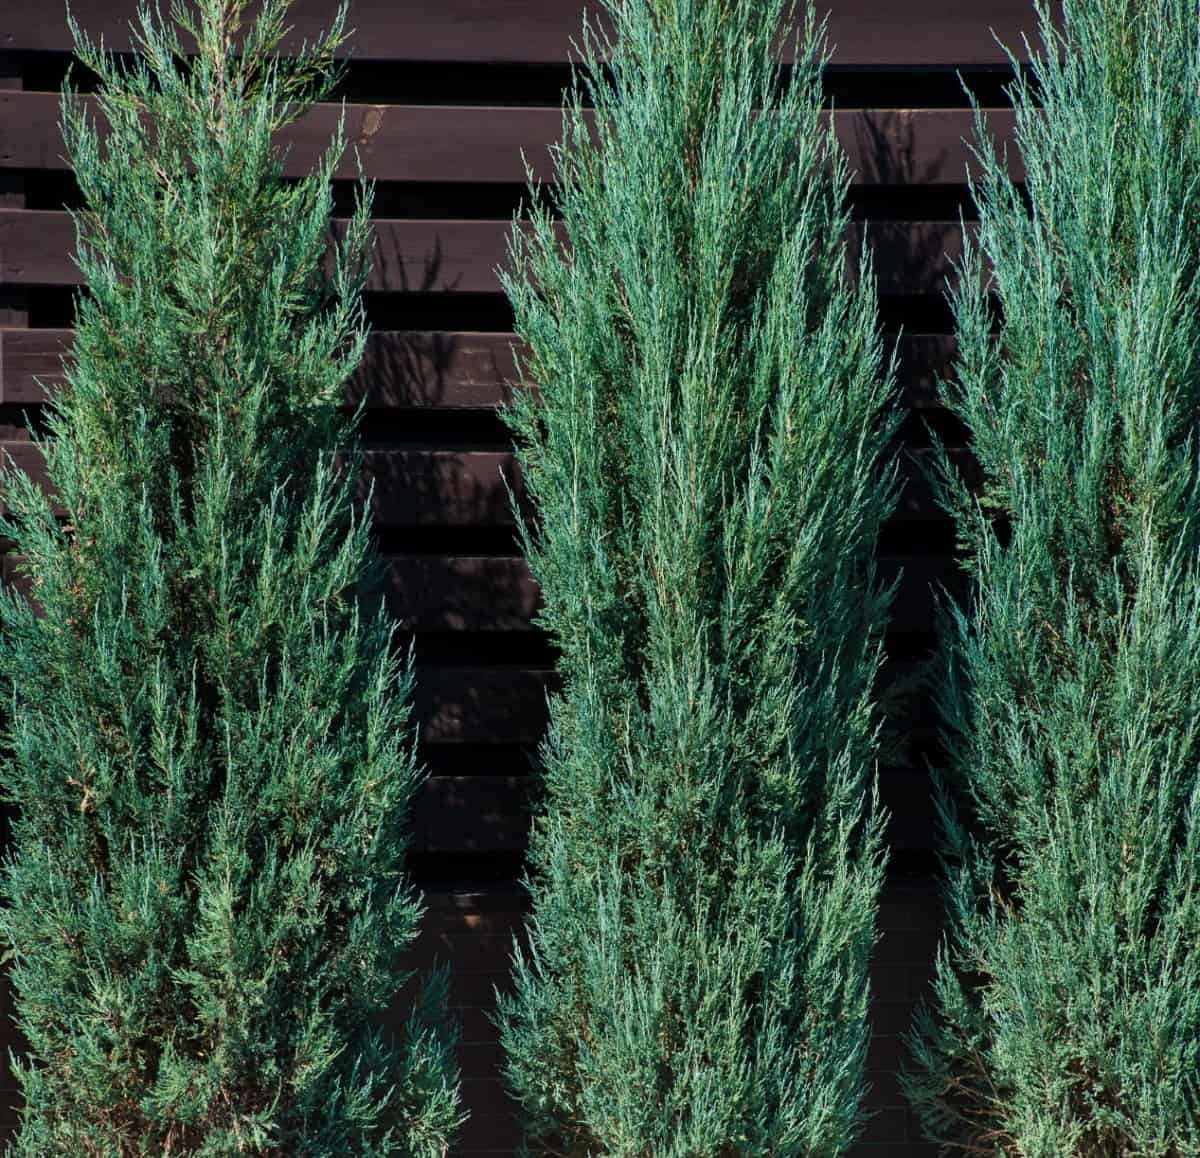 Emerald arborvitae is known for its dense foliage.